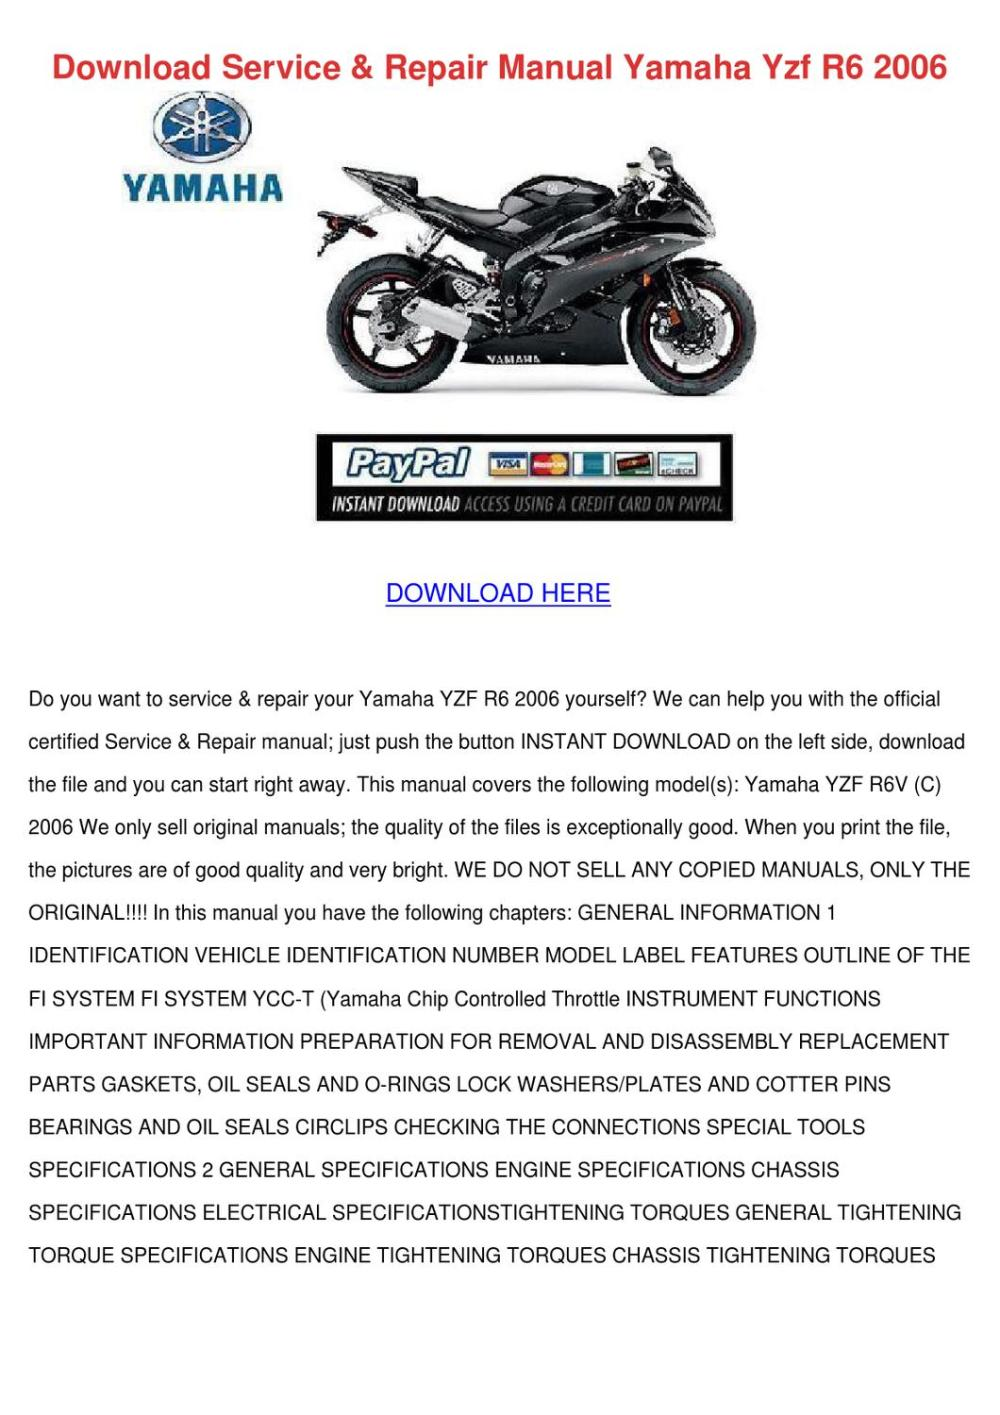 medium resolution of download service repair manual yamaha yzf r6